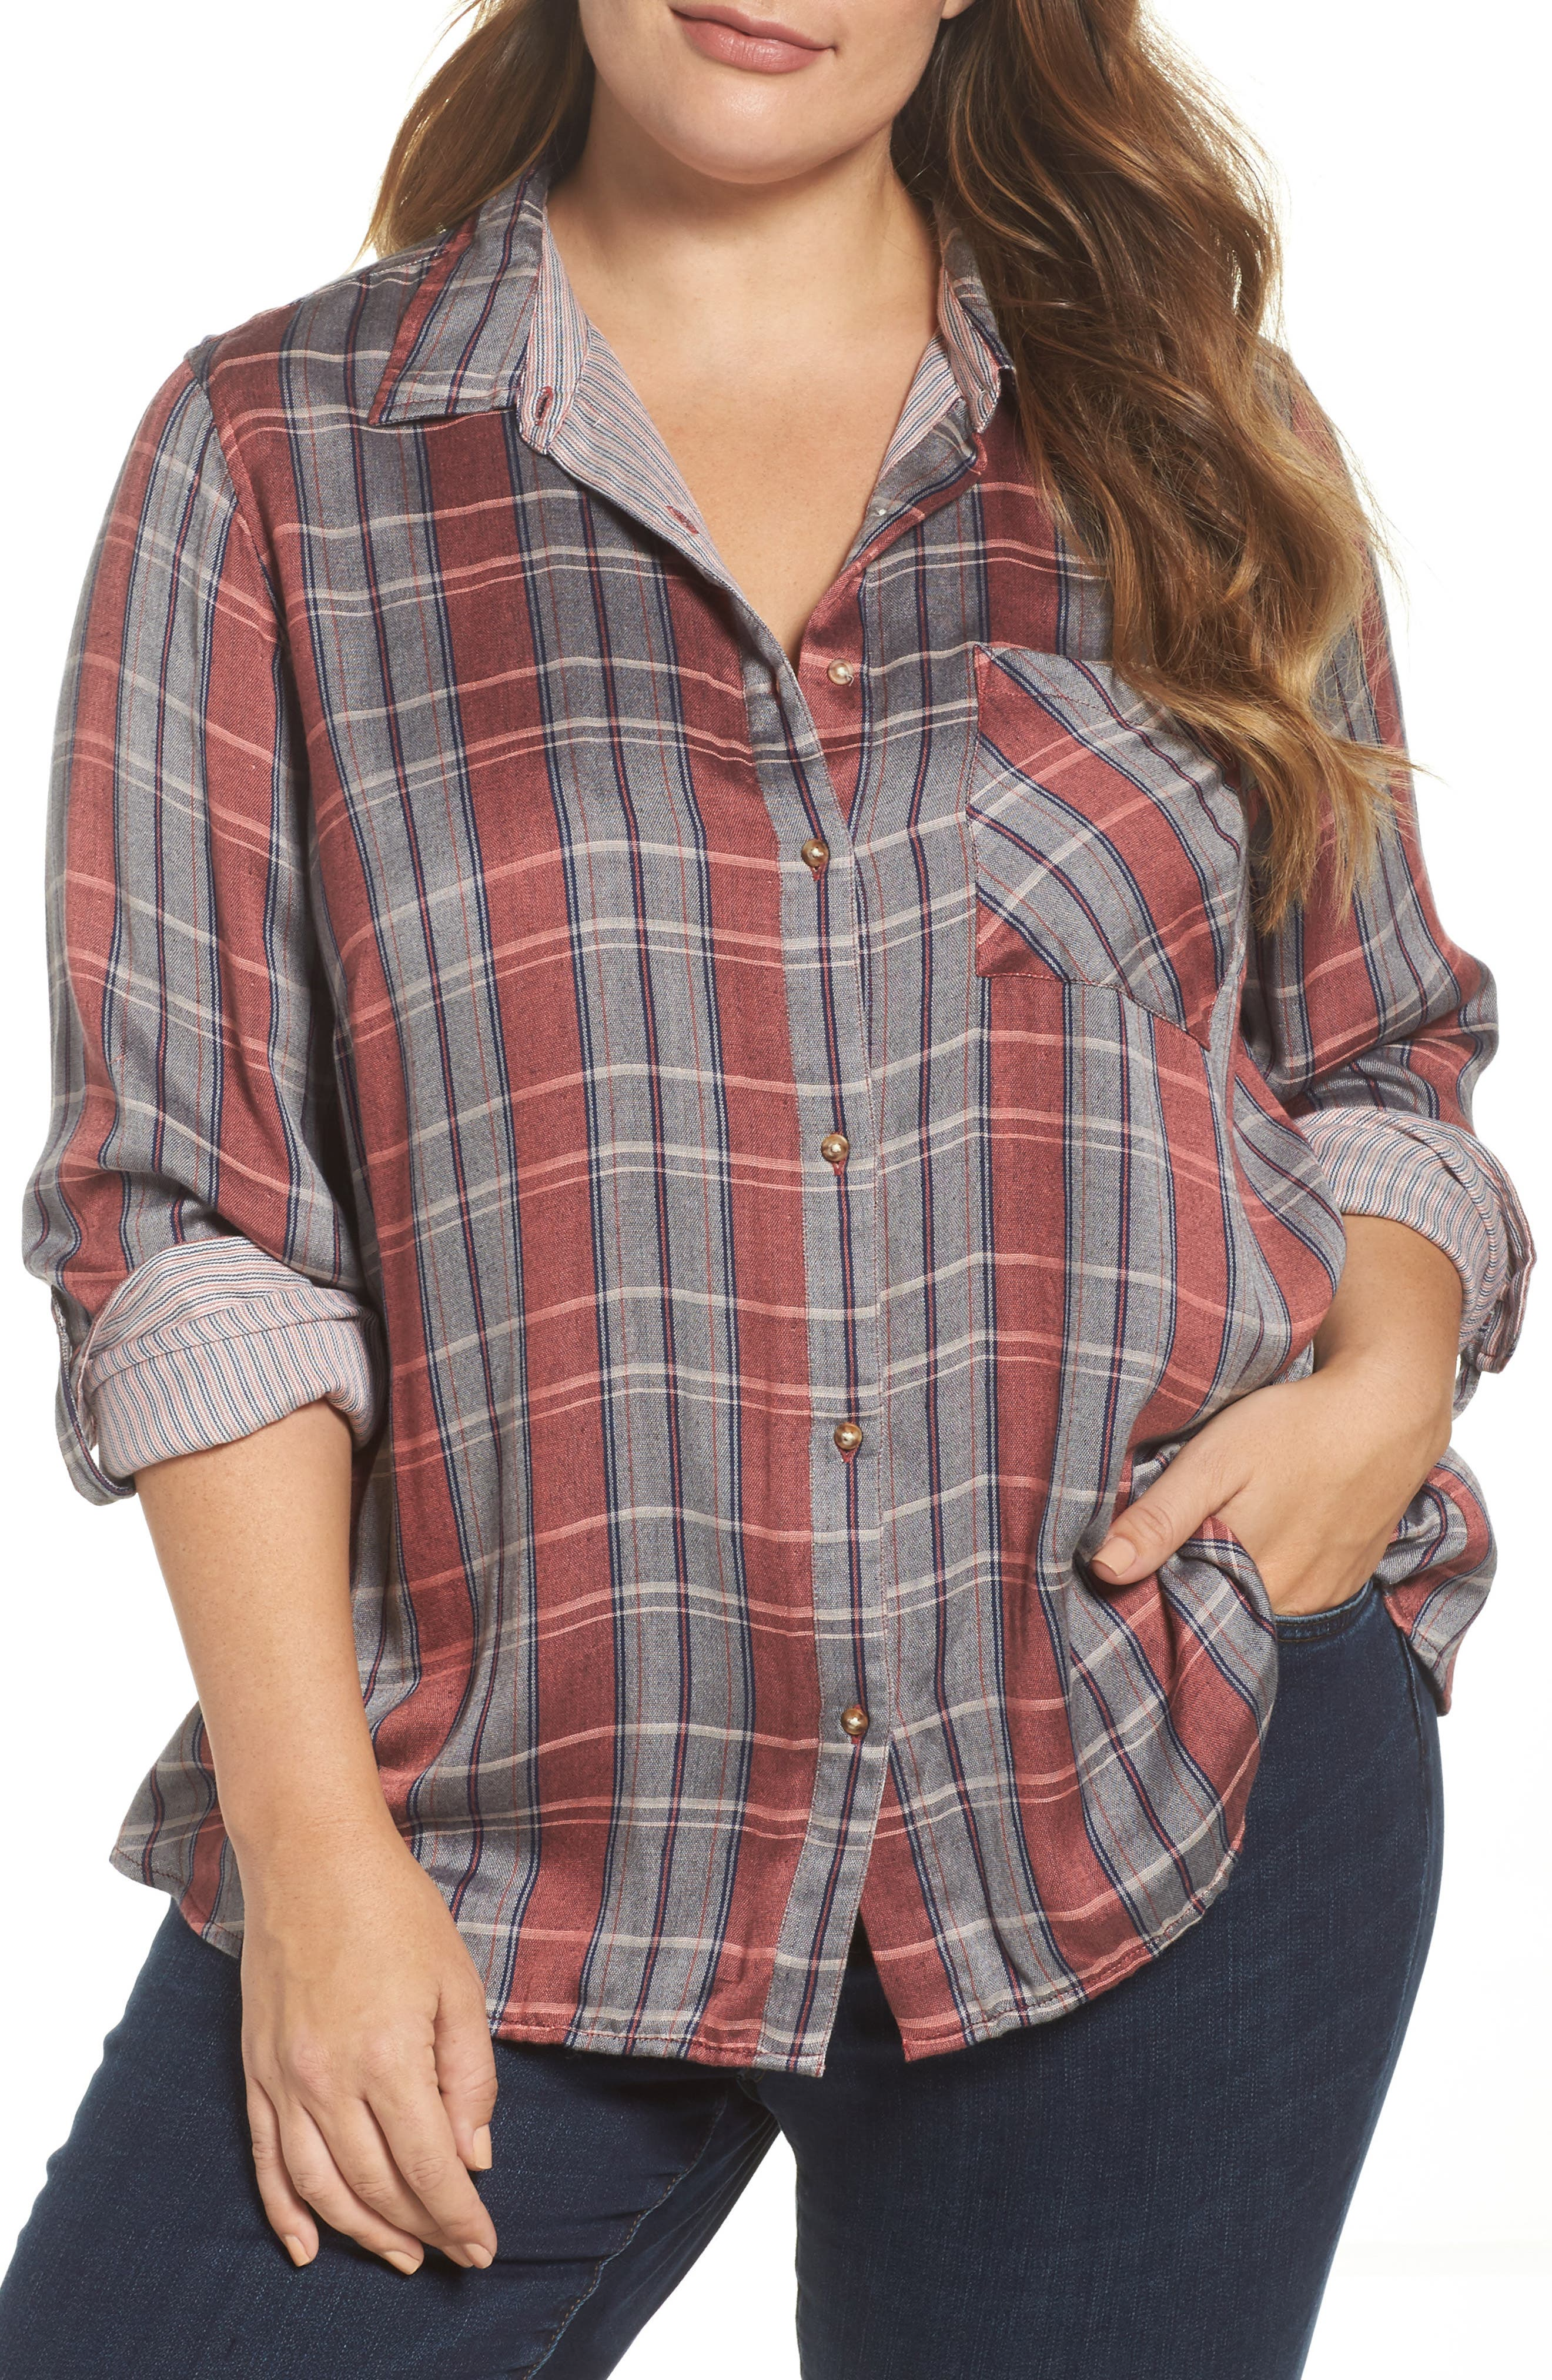 Alternate Image 1 Selected - Lucky Brand Plaid Pocket Shirt (Plus Size)